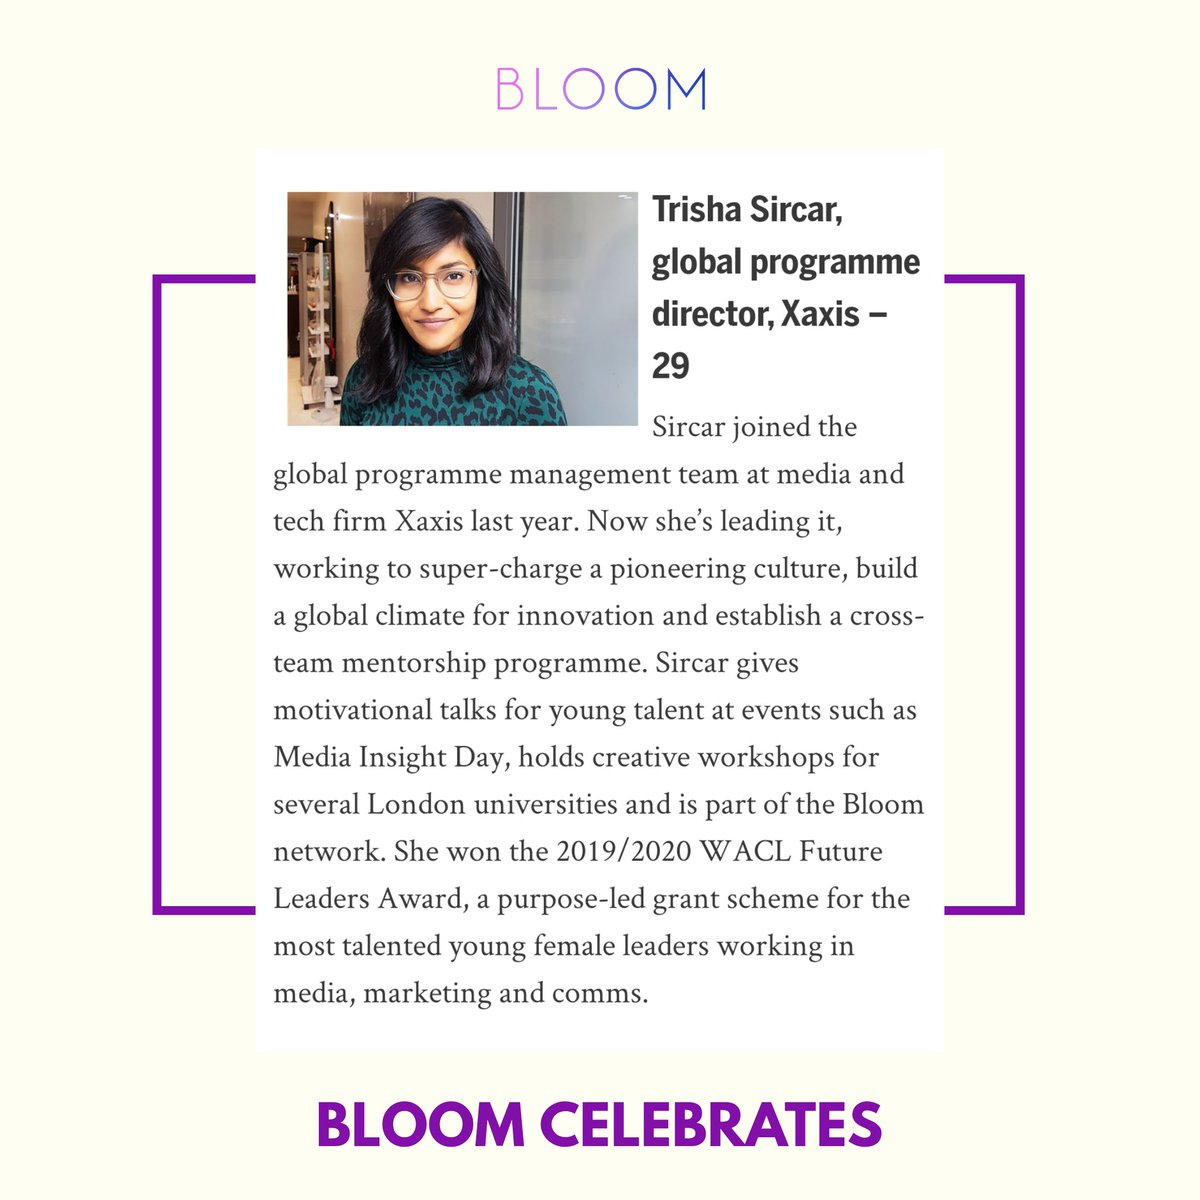 We're so proud of Trisha Sircar, Bloom mentee, has won Management Today's 35 under 35 🎉 Trisha is leading the global programme team @XaxisTweets, building a global climate for innovation, & recent WACL Future Leaders award @FUTURESnetwork https://t.co/5kjexO3vf4 https://t.co/xZ7AOMJbnt